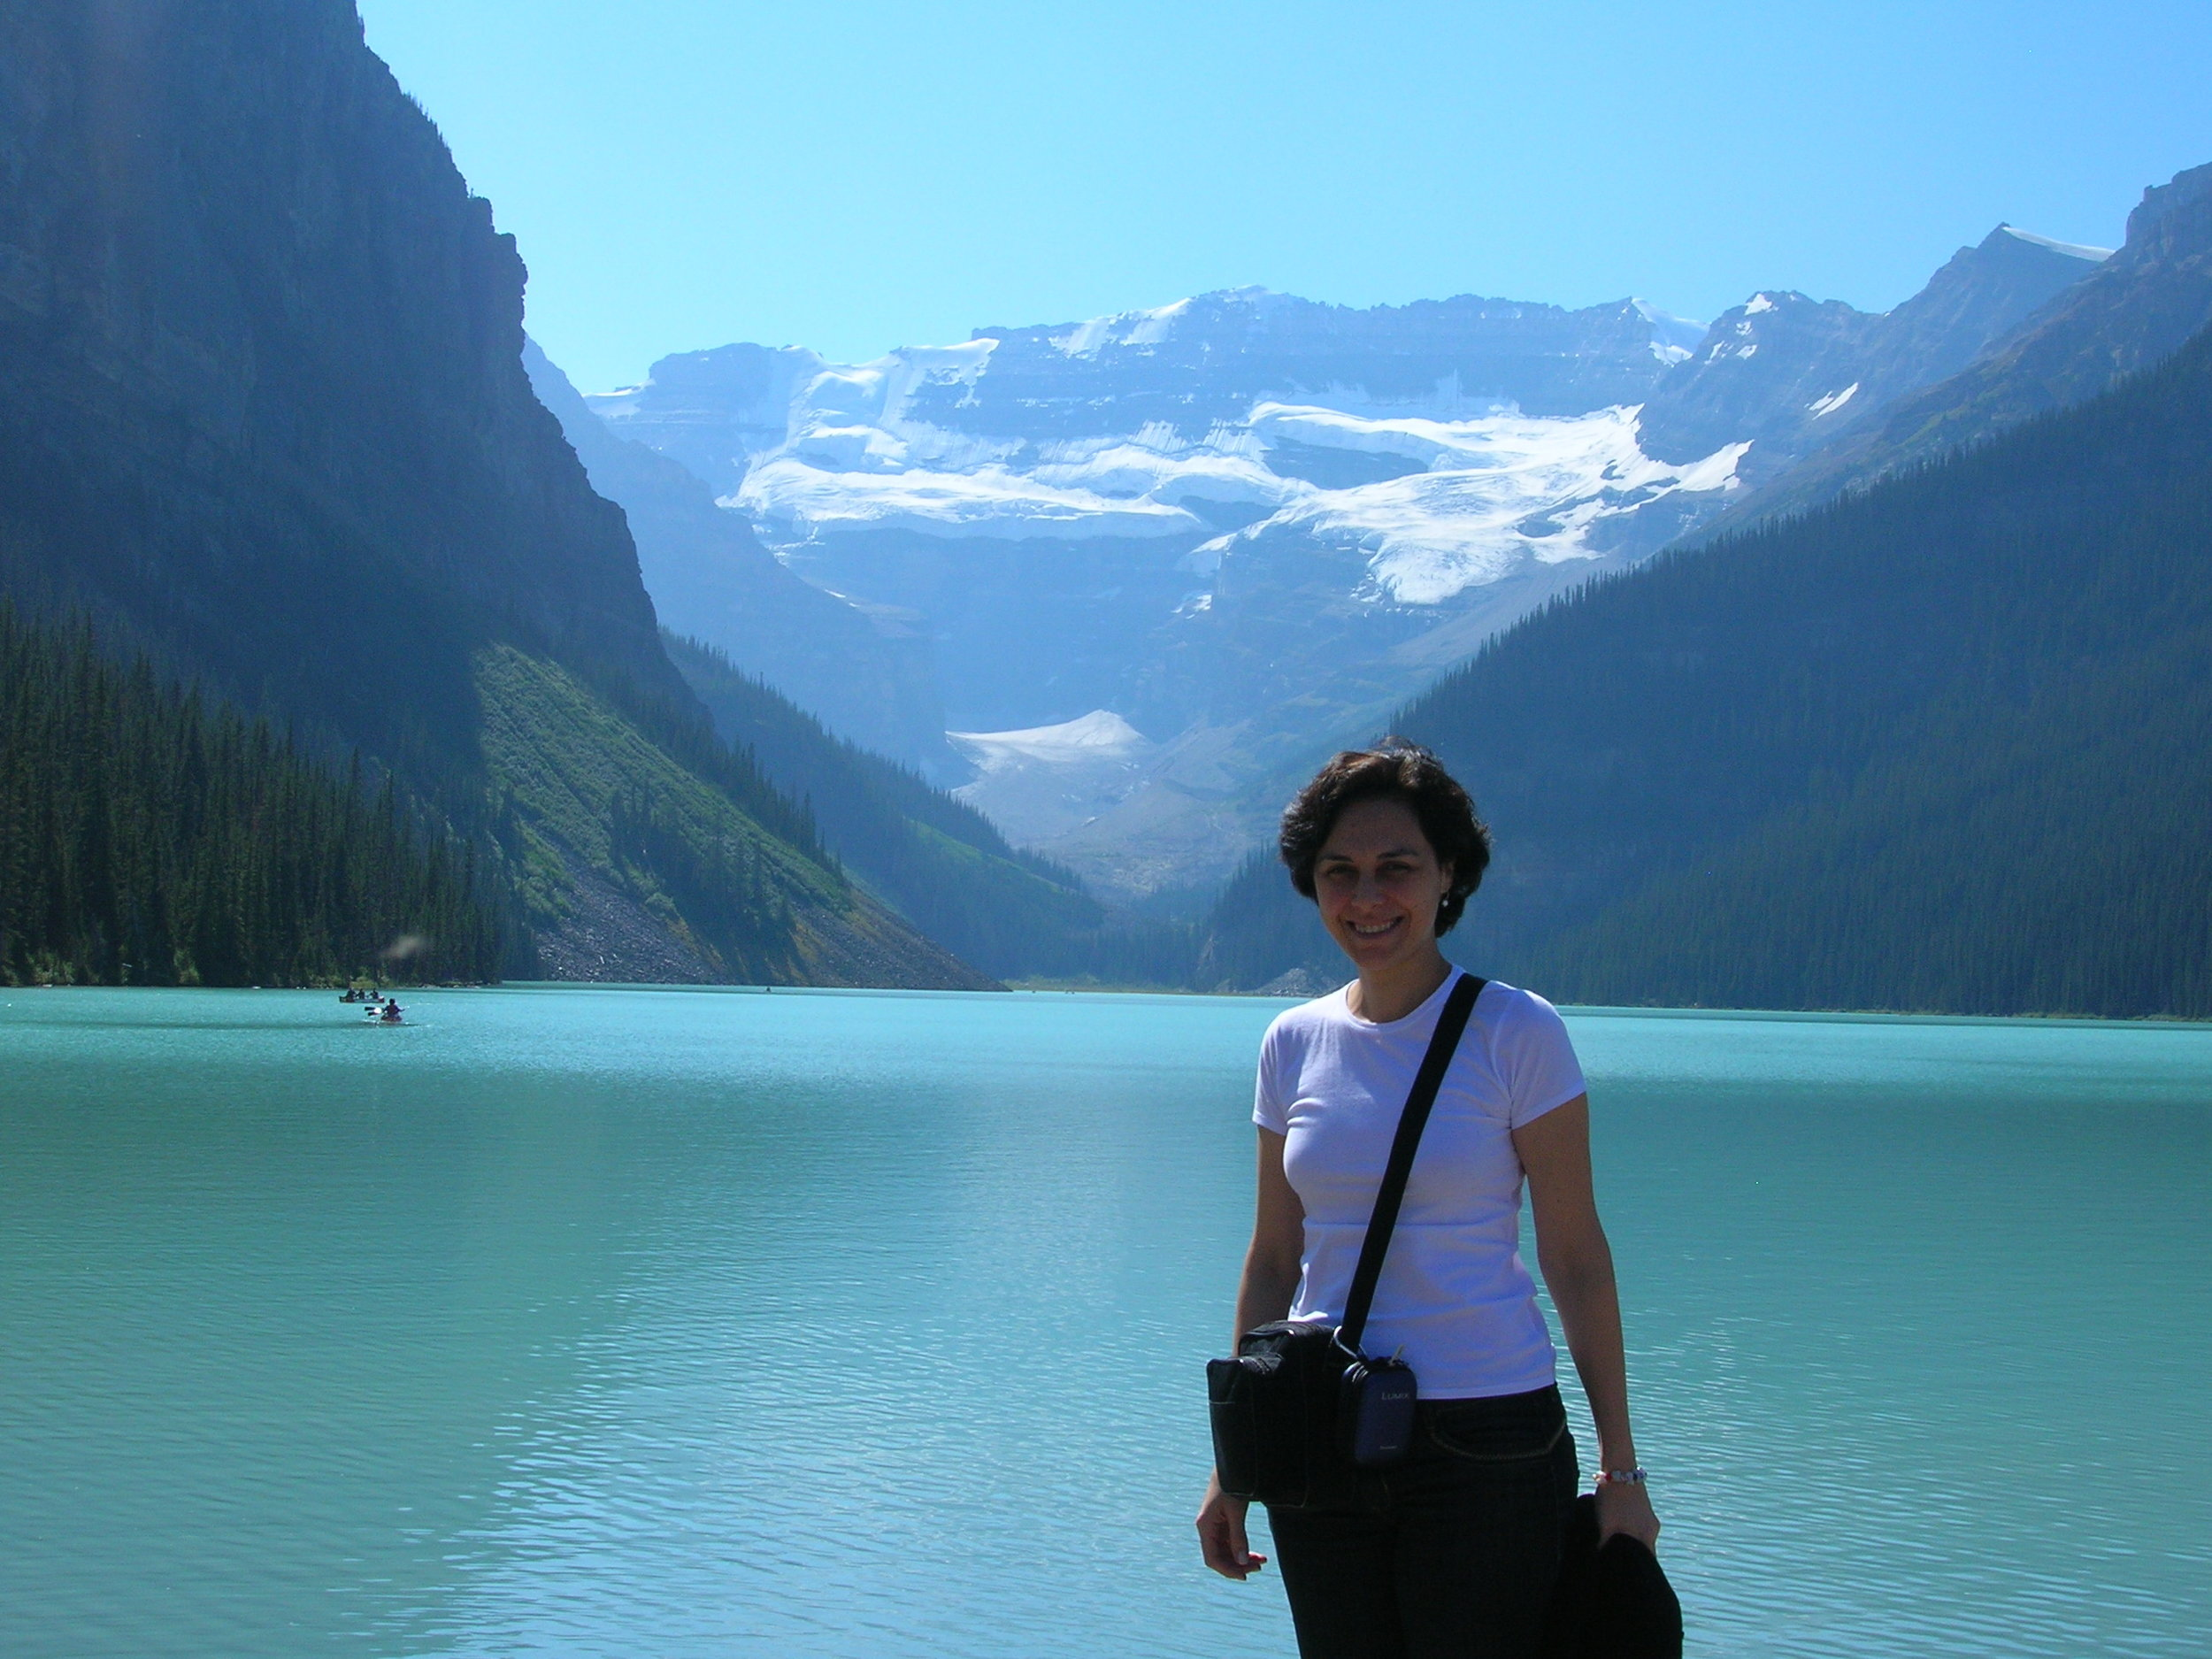 Lake Louise, Canadá, 2009